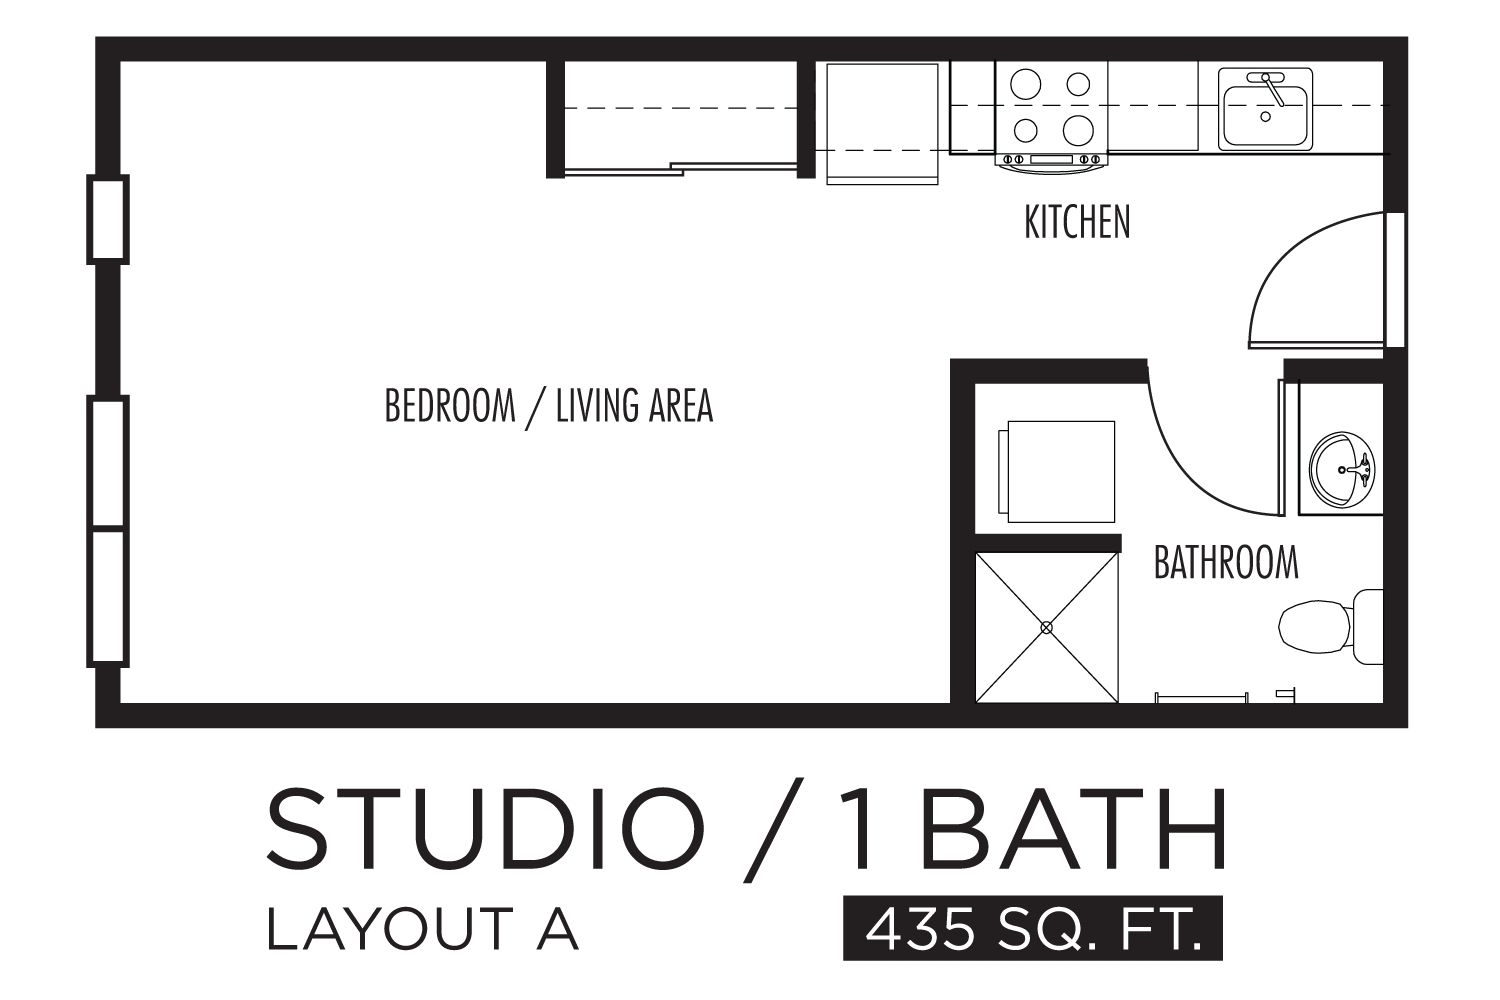 Floor Plans For Studio Apts Studio Floor Plans Studio Apartment Floor Plans One Room Apartment